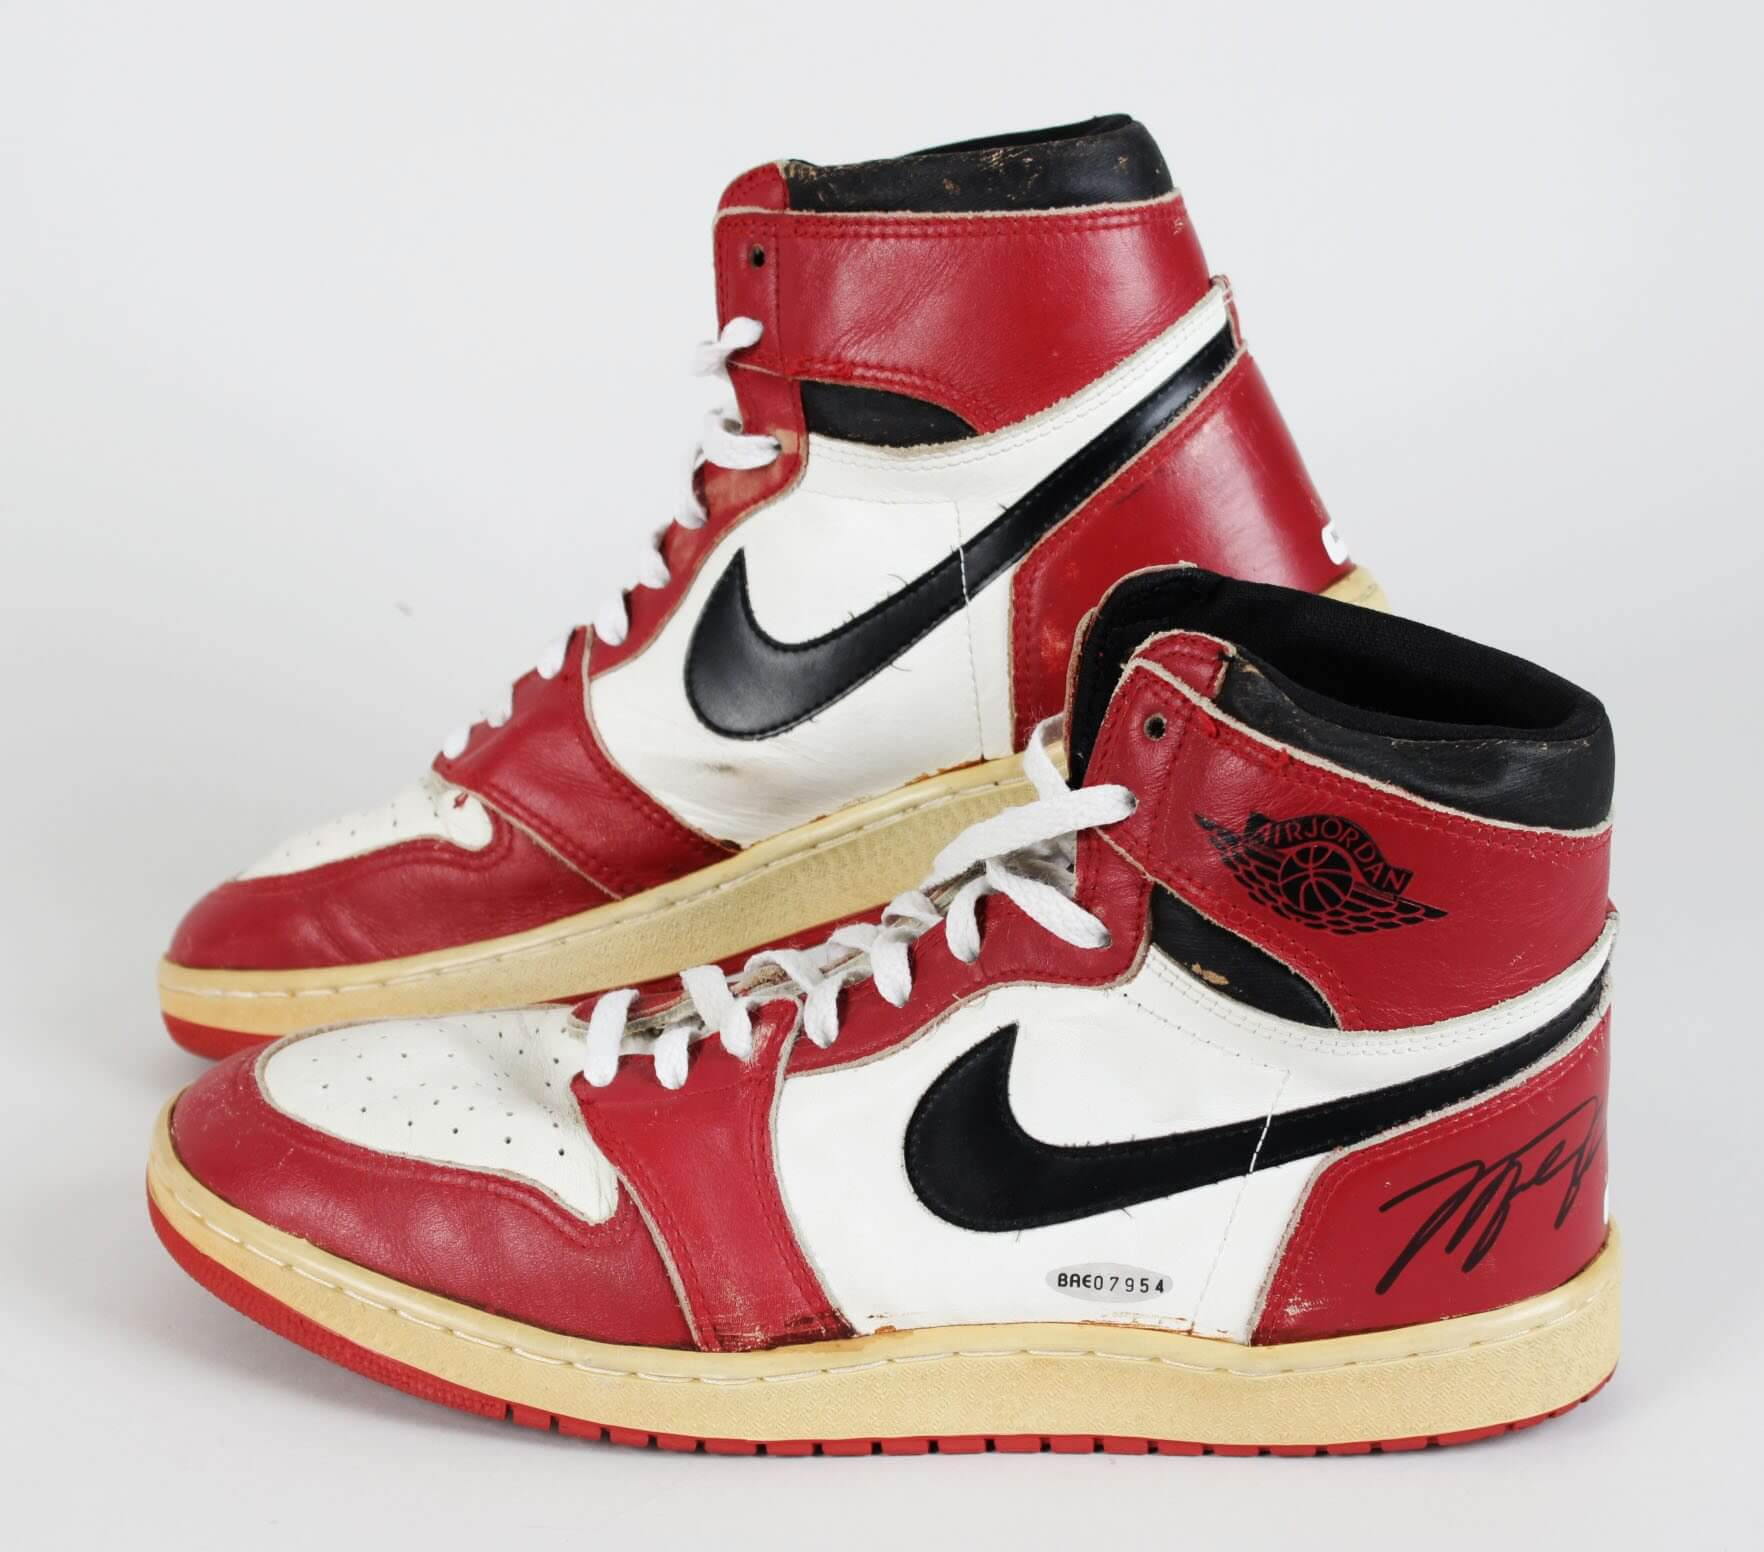 1985-86 Chicago Bulls - Michael Jordan Game-Worn, Signed Air Jordan I